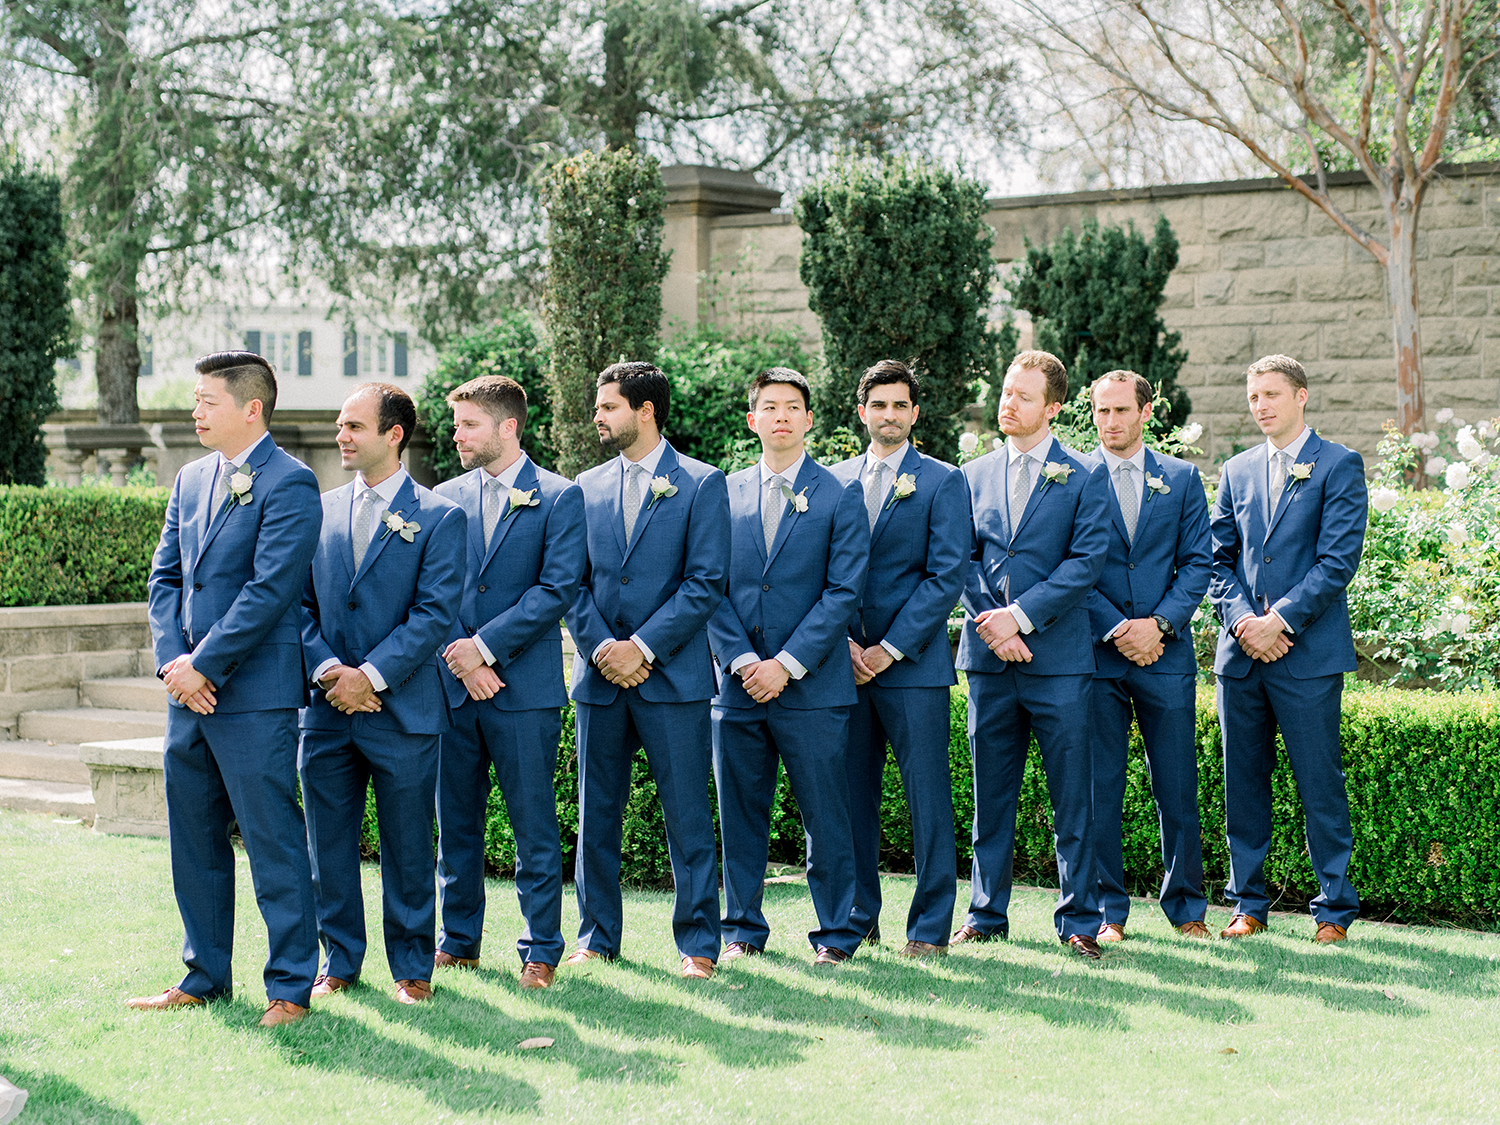 Romantic and Classic Greystone Mansion Wedding by Lucky Day Events Co. x Jordan Galindo Photography // Navy Groomsmen Suits